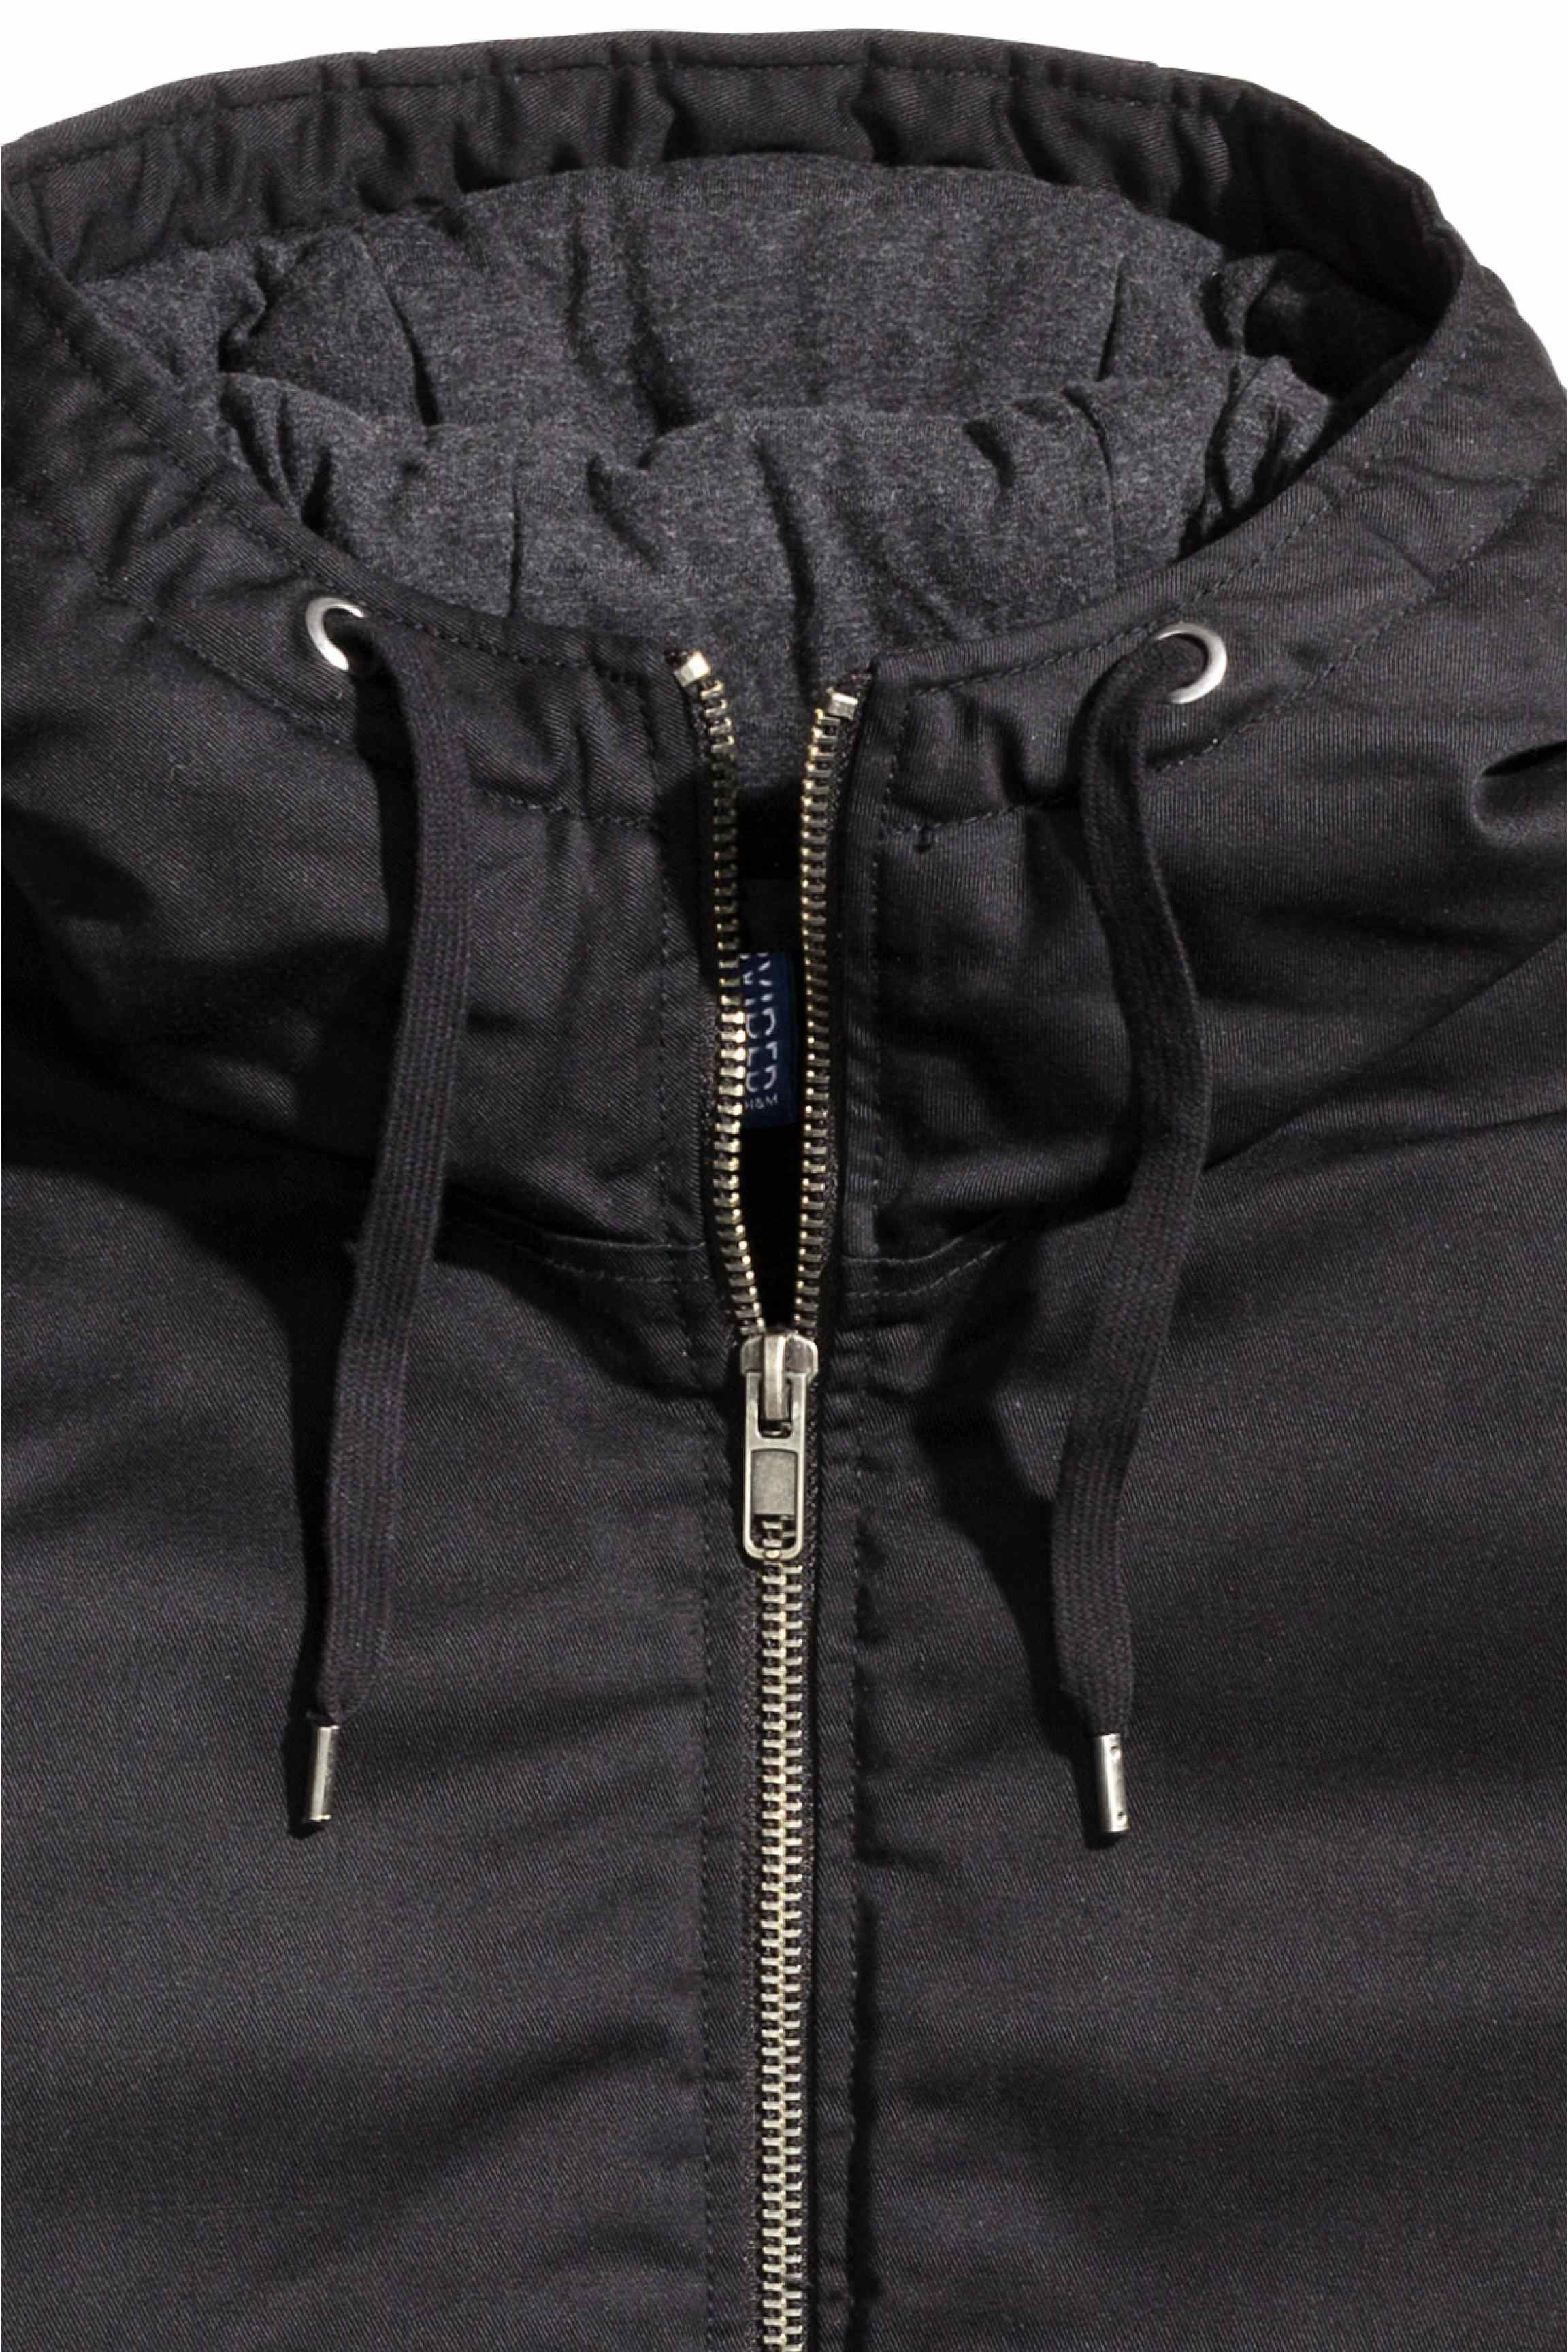 H&M Synthetic Padded Jacket in Black for Men